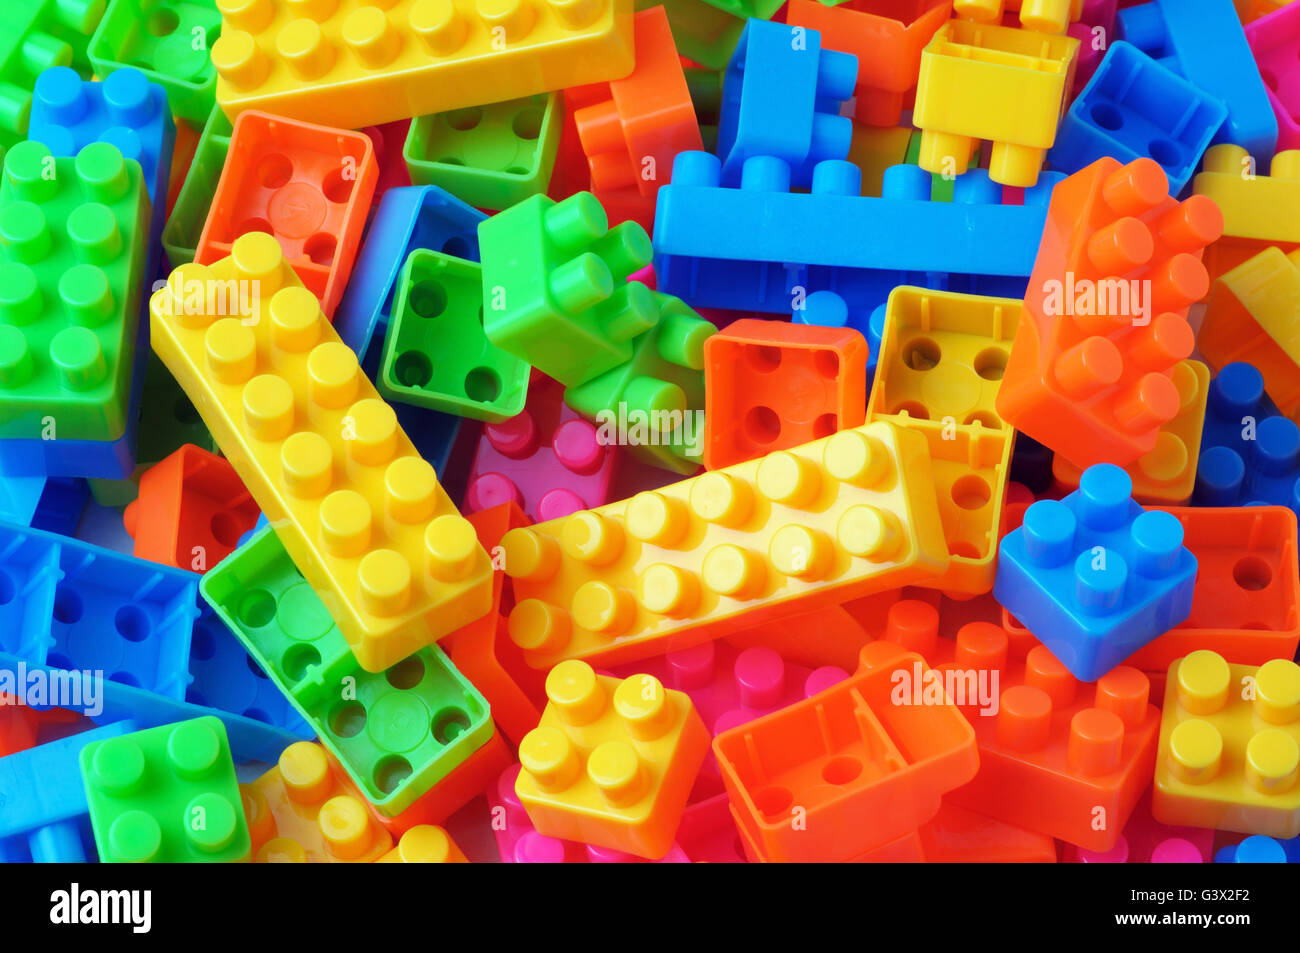 Full frame shot of colorful toy building - Stock Image